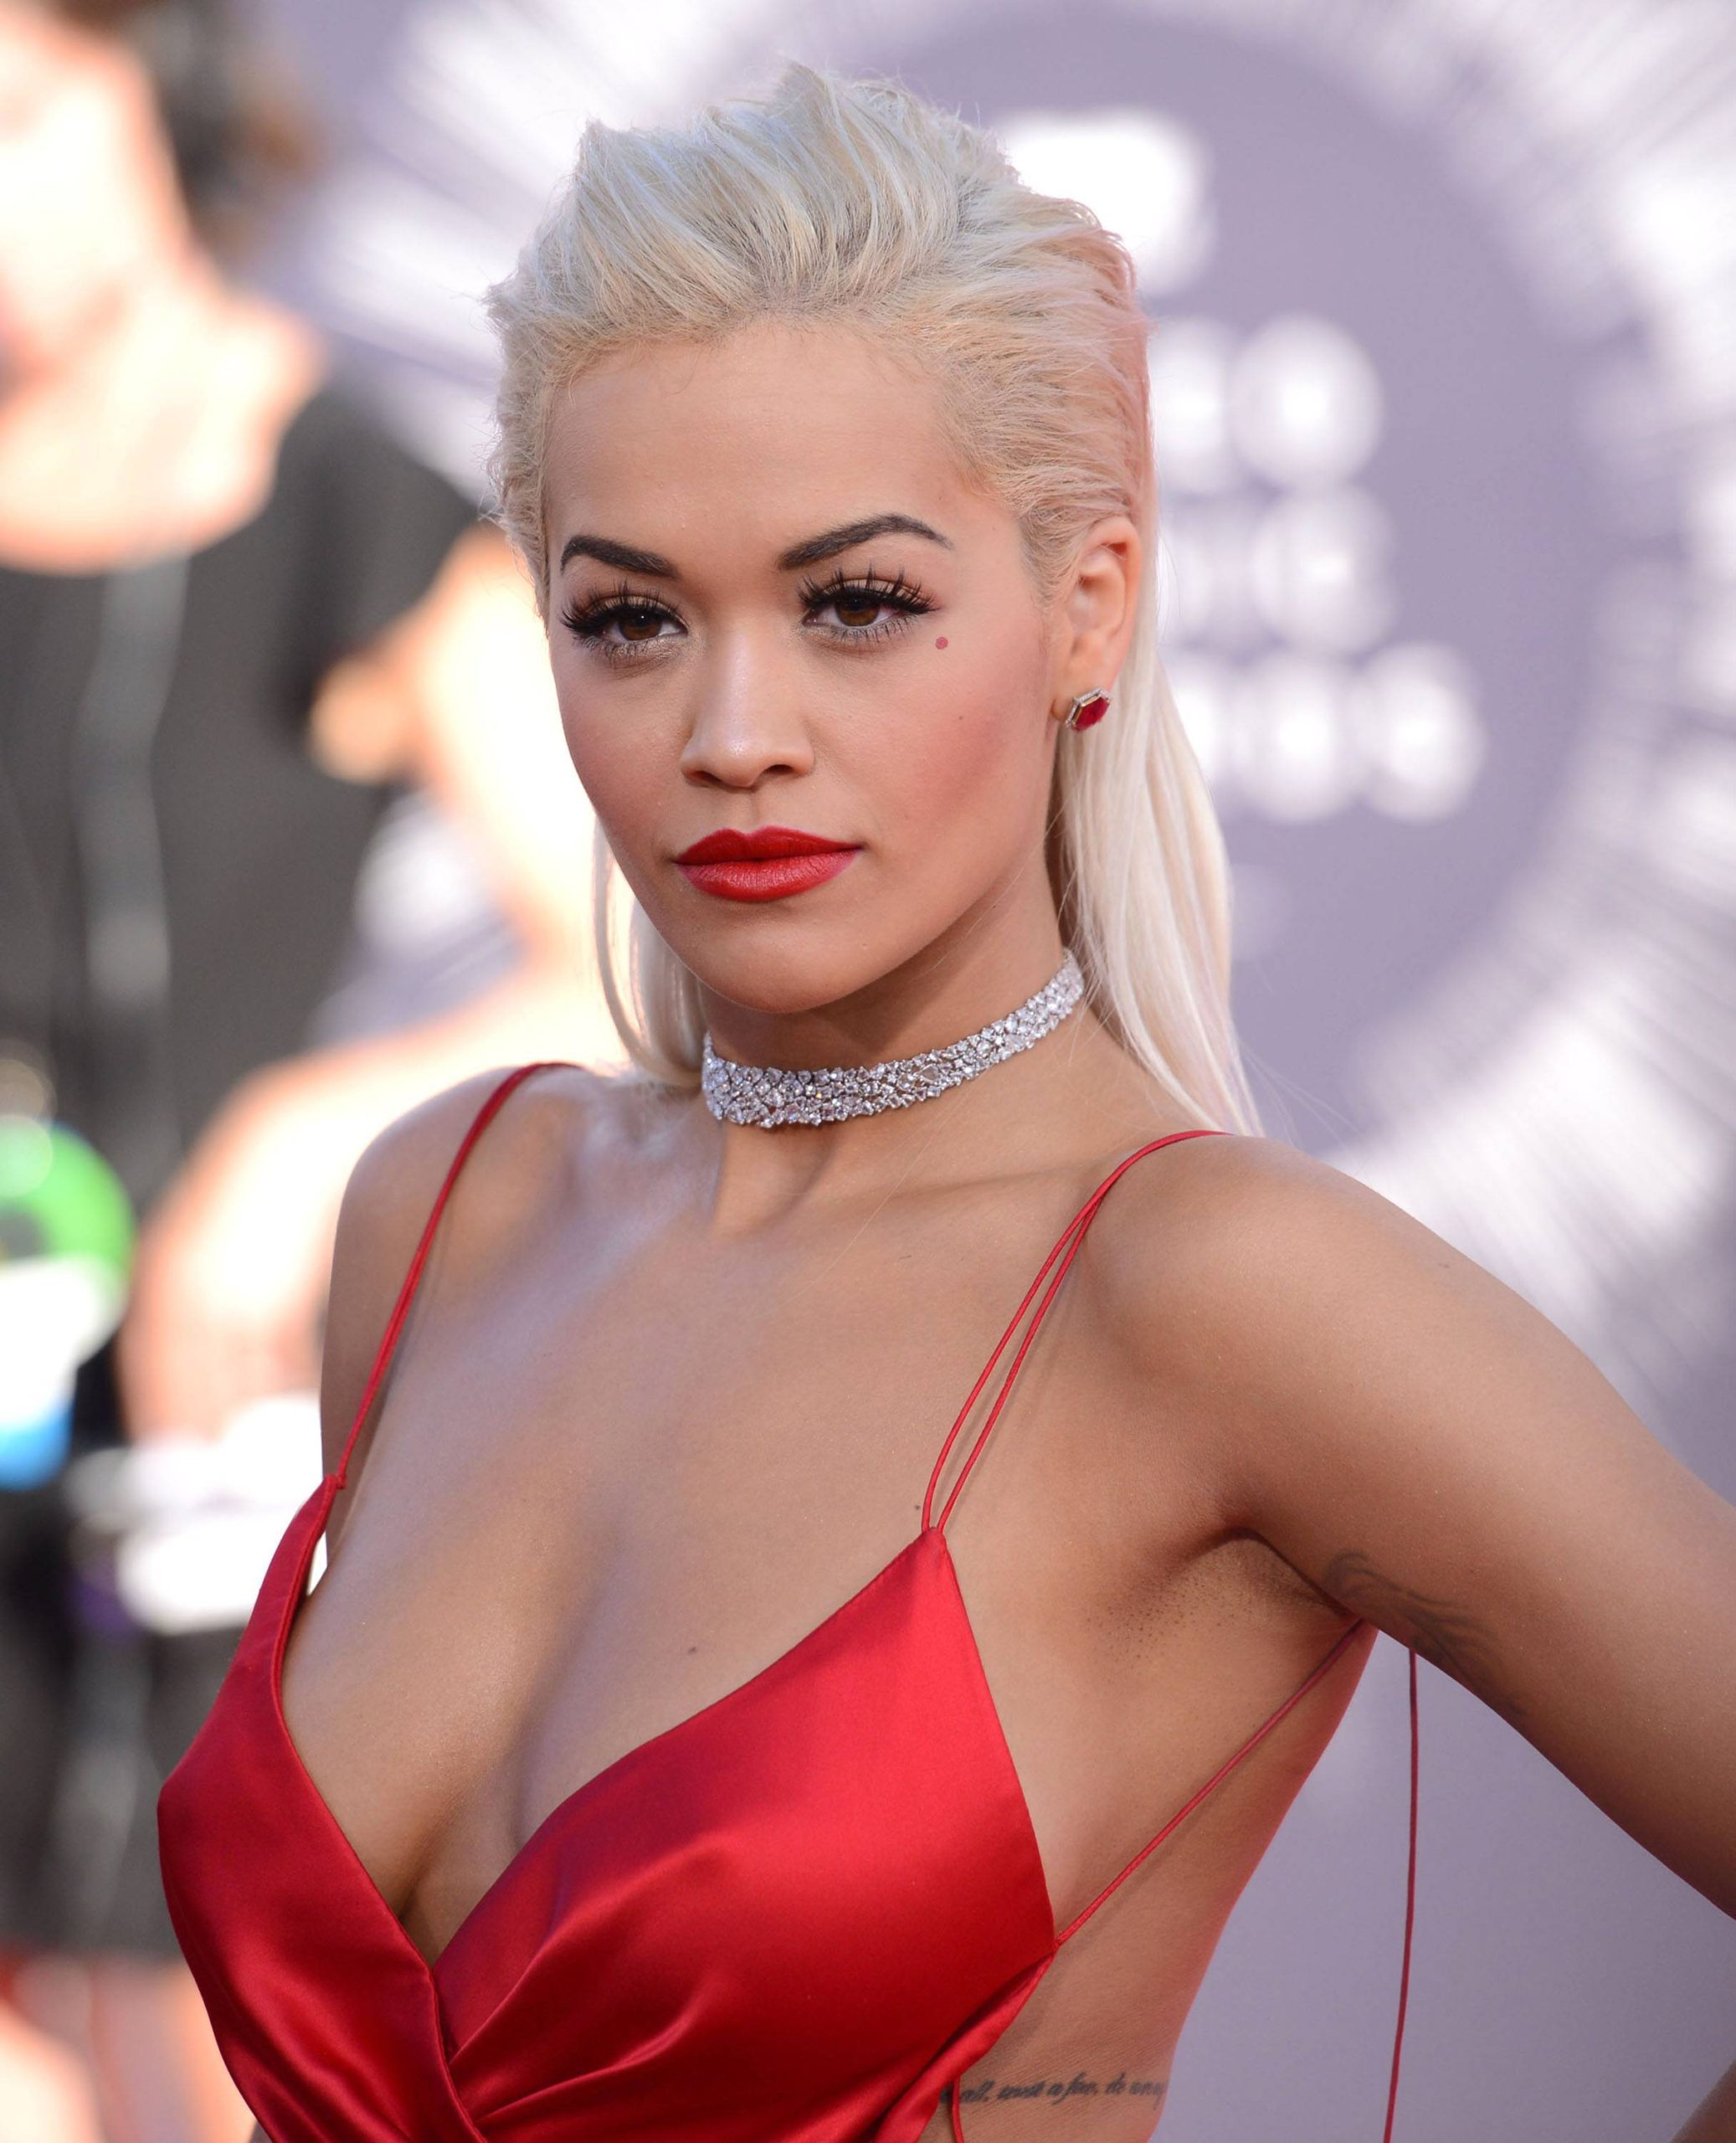 Rita Ora scaled - Rita Ora Net Worth, Pics, Wallpapers, Career and Biography